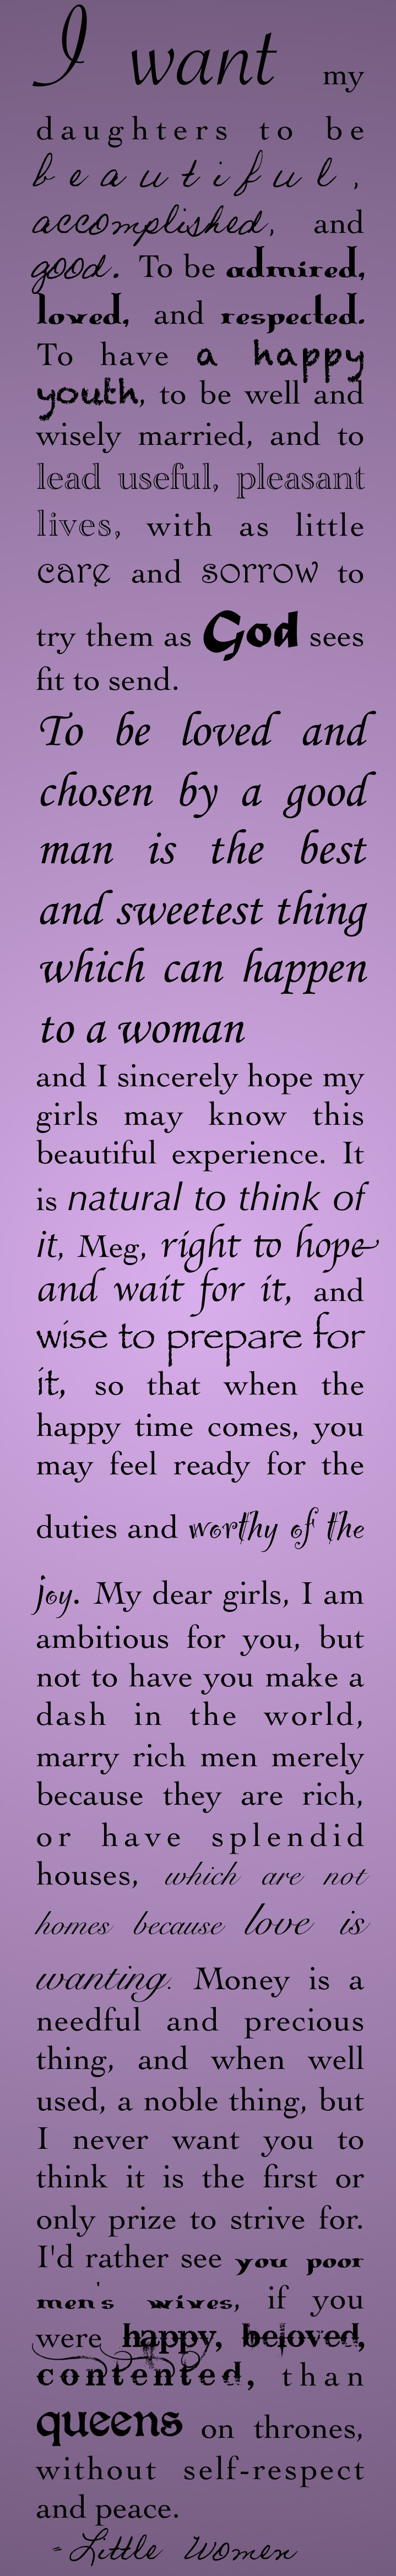 Pin By Mary Catherine Thompson On Literarally Fantastic Little Women Quotes Quotes About Motherhood Woman Quotes